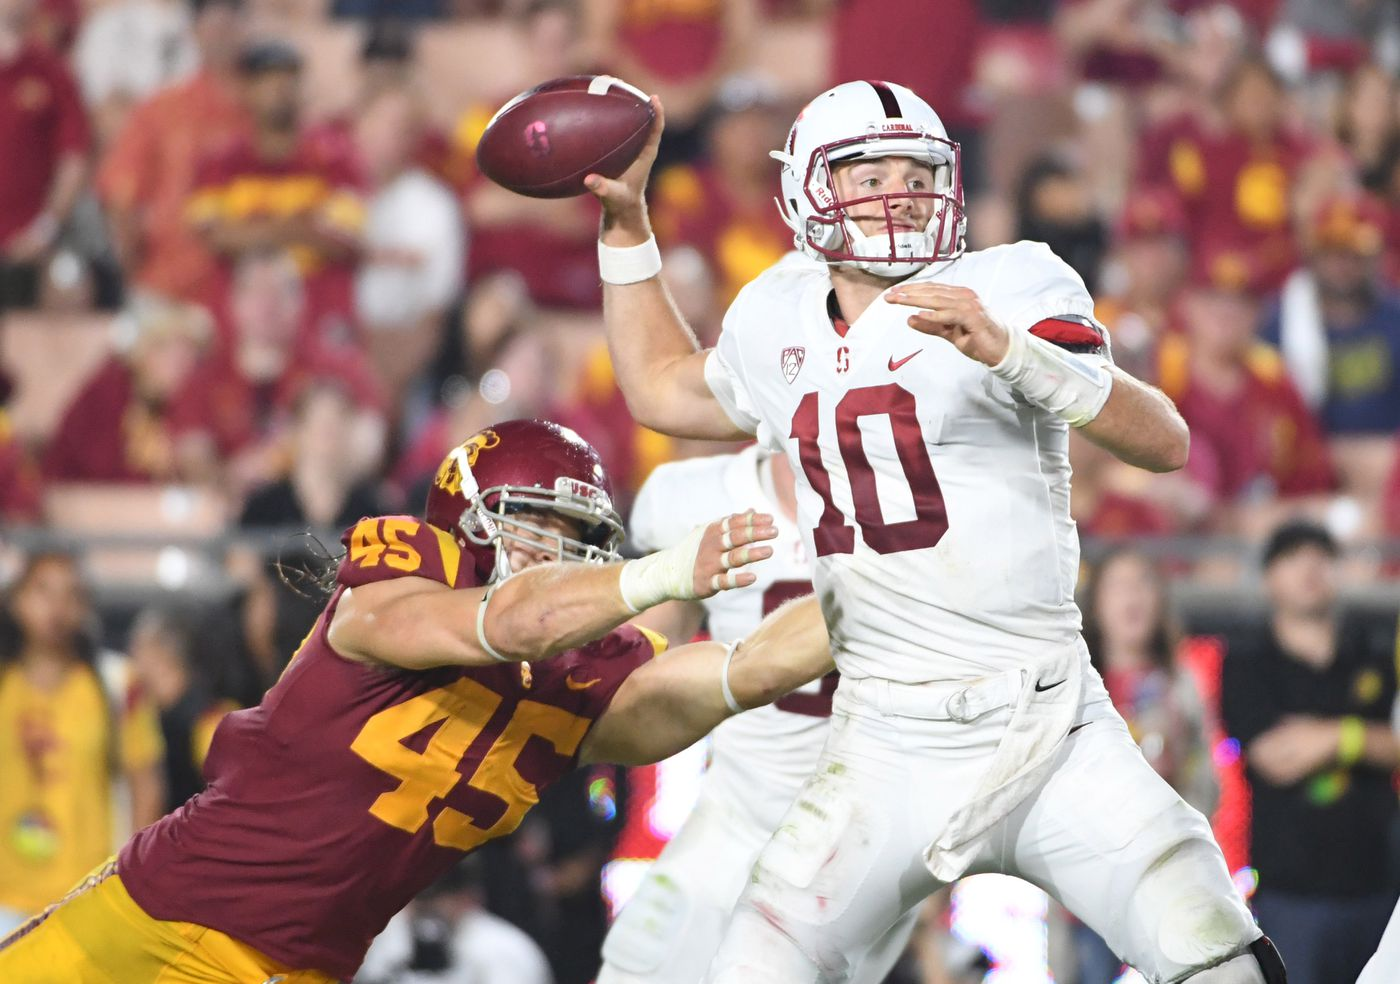 sneakers for cheap 5c0d7 ec1f3 New Orleans Saints undrafted rookie profile: Porter Gustin ...